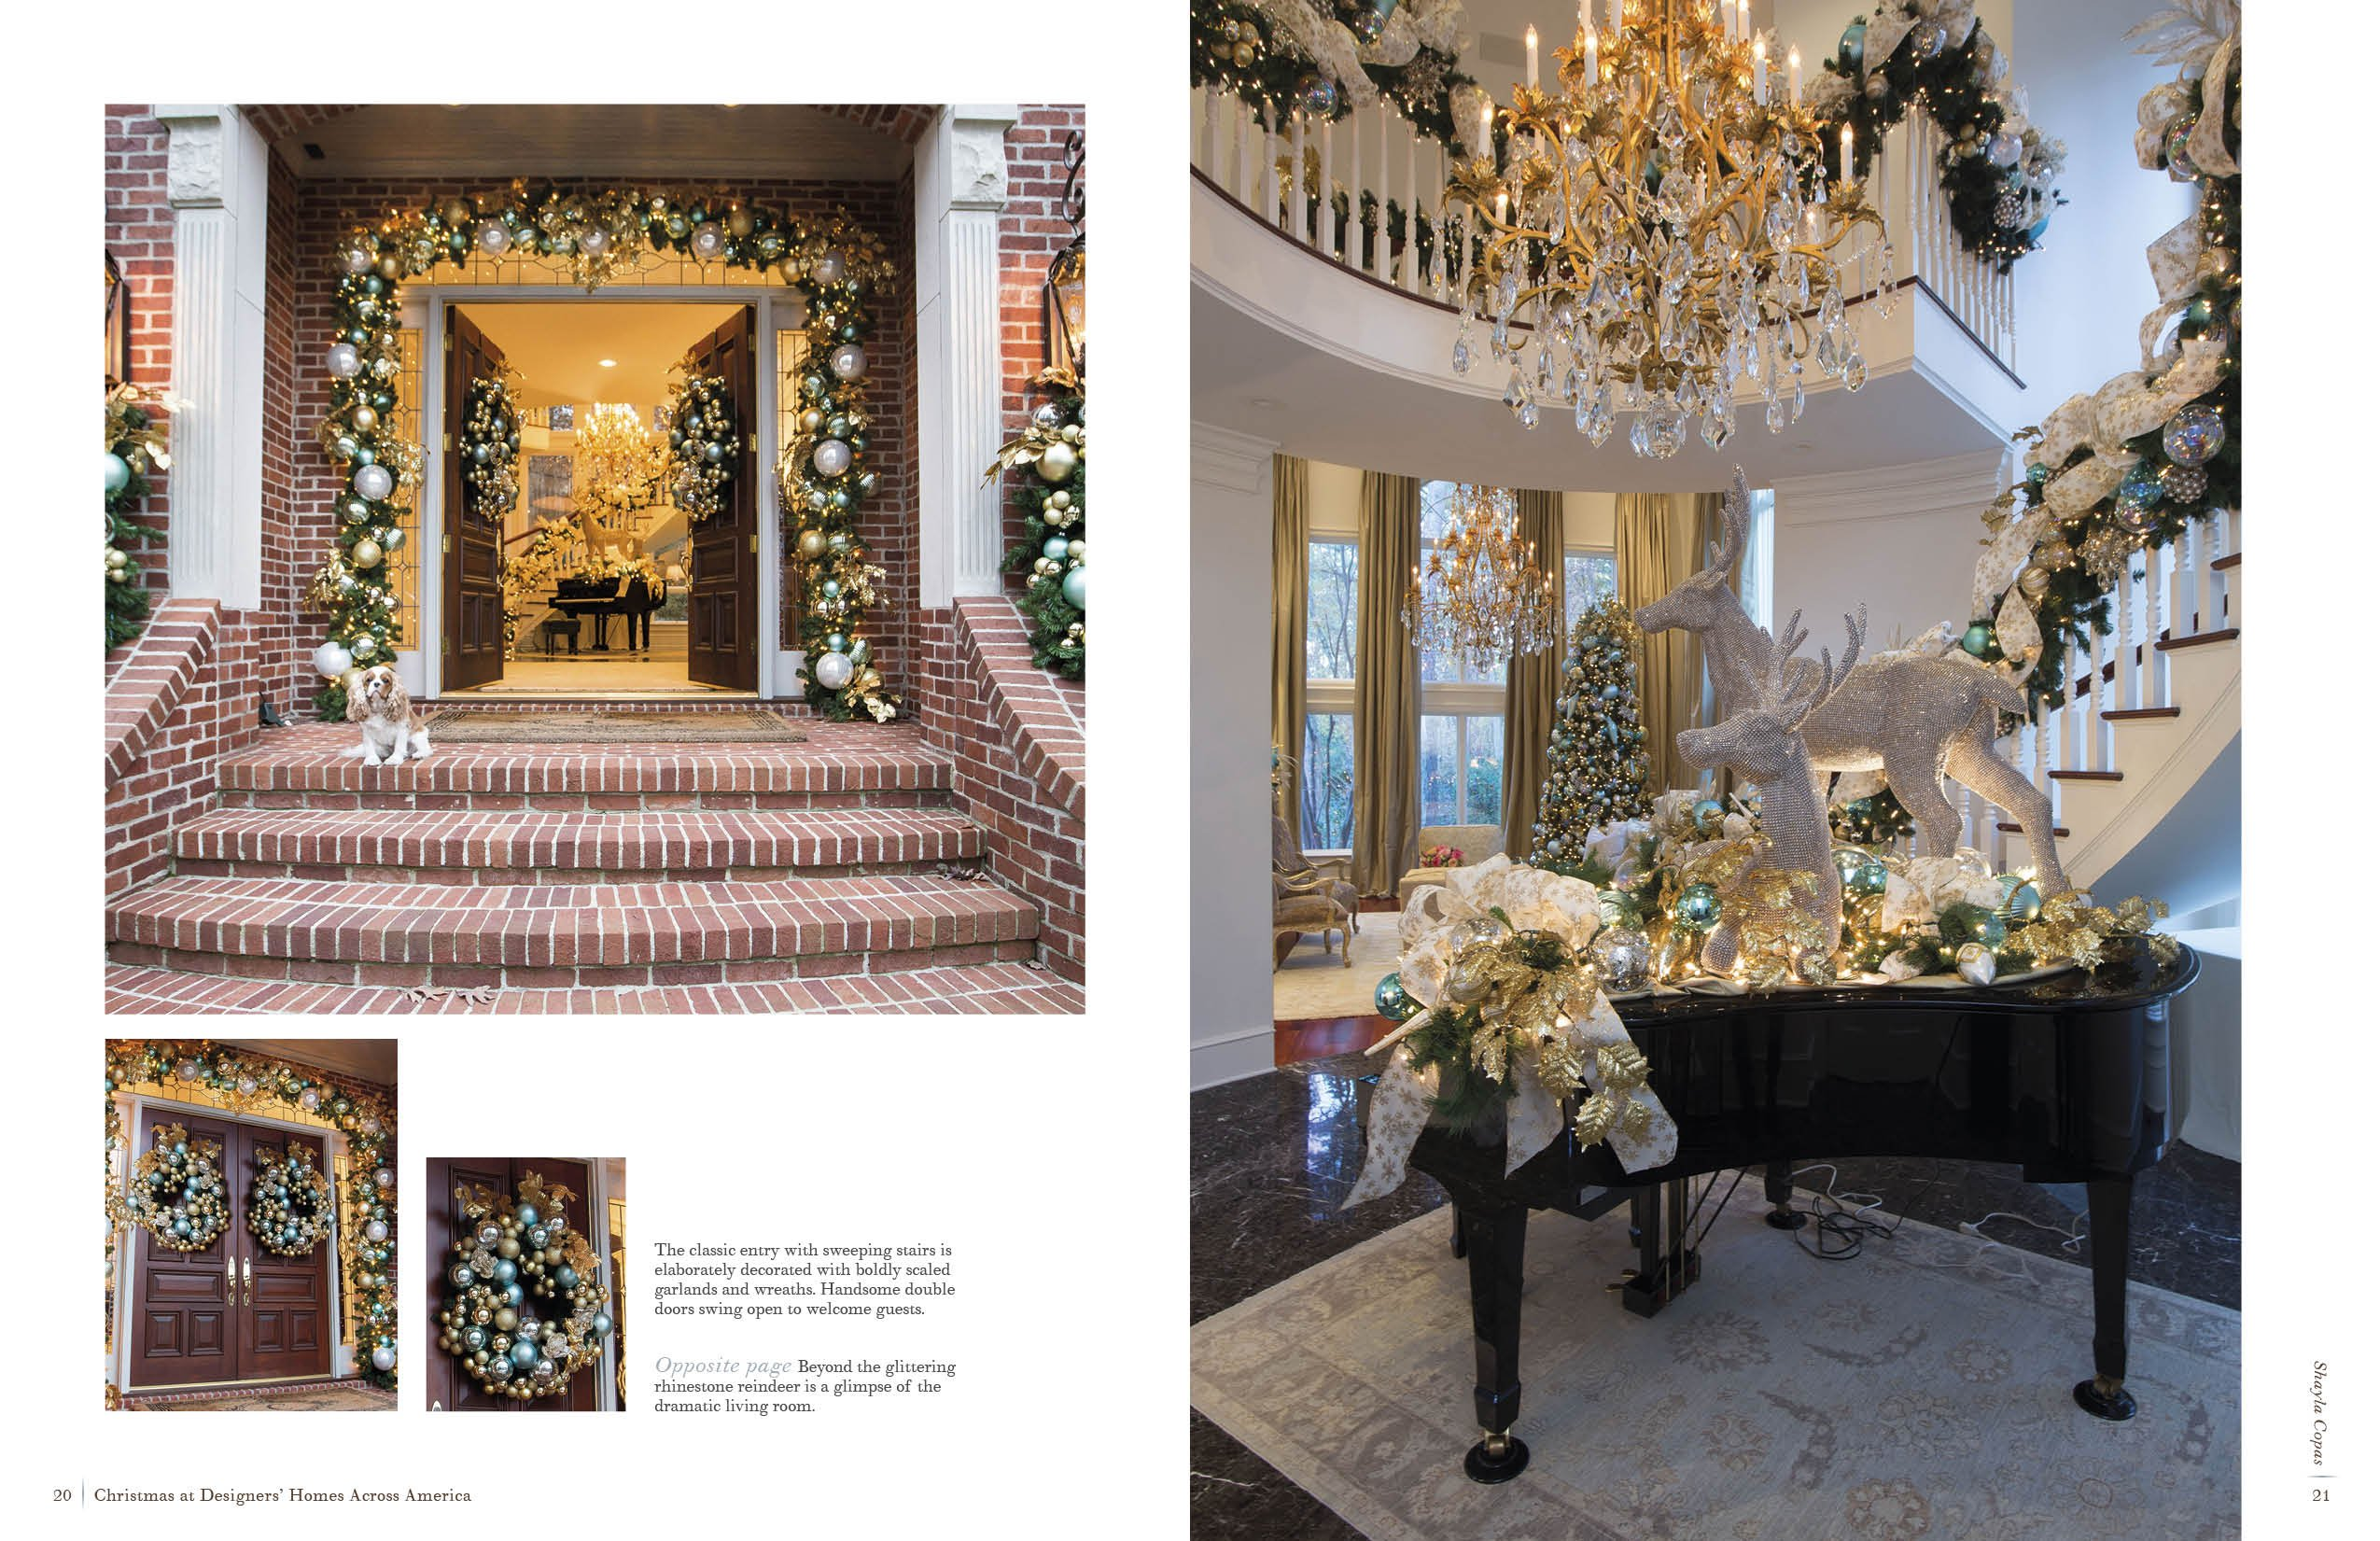 christmas at designers homes across america katharine mcmillan patricia mcmillan 9780764351631 amazoncom books - Designers Homes